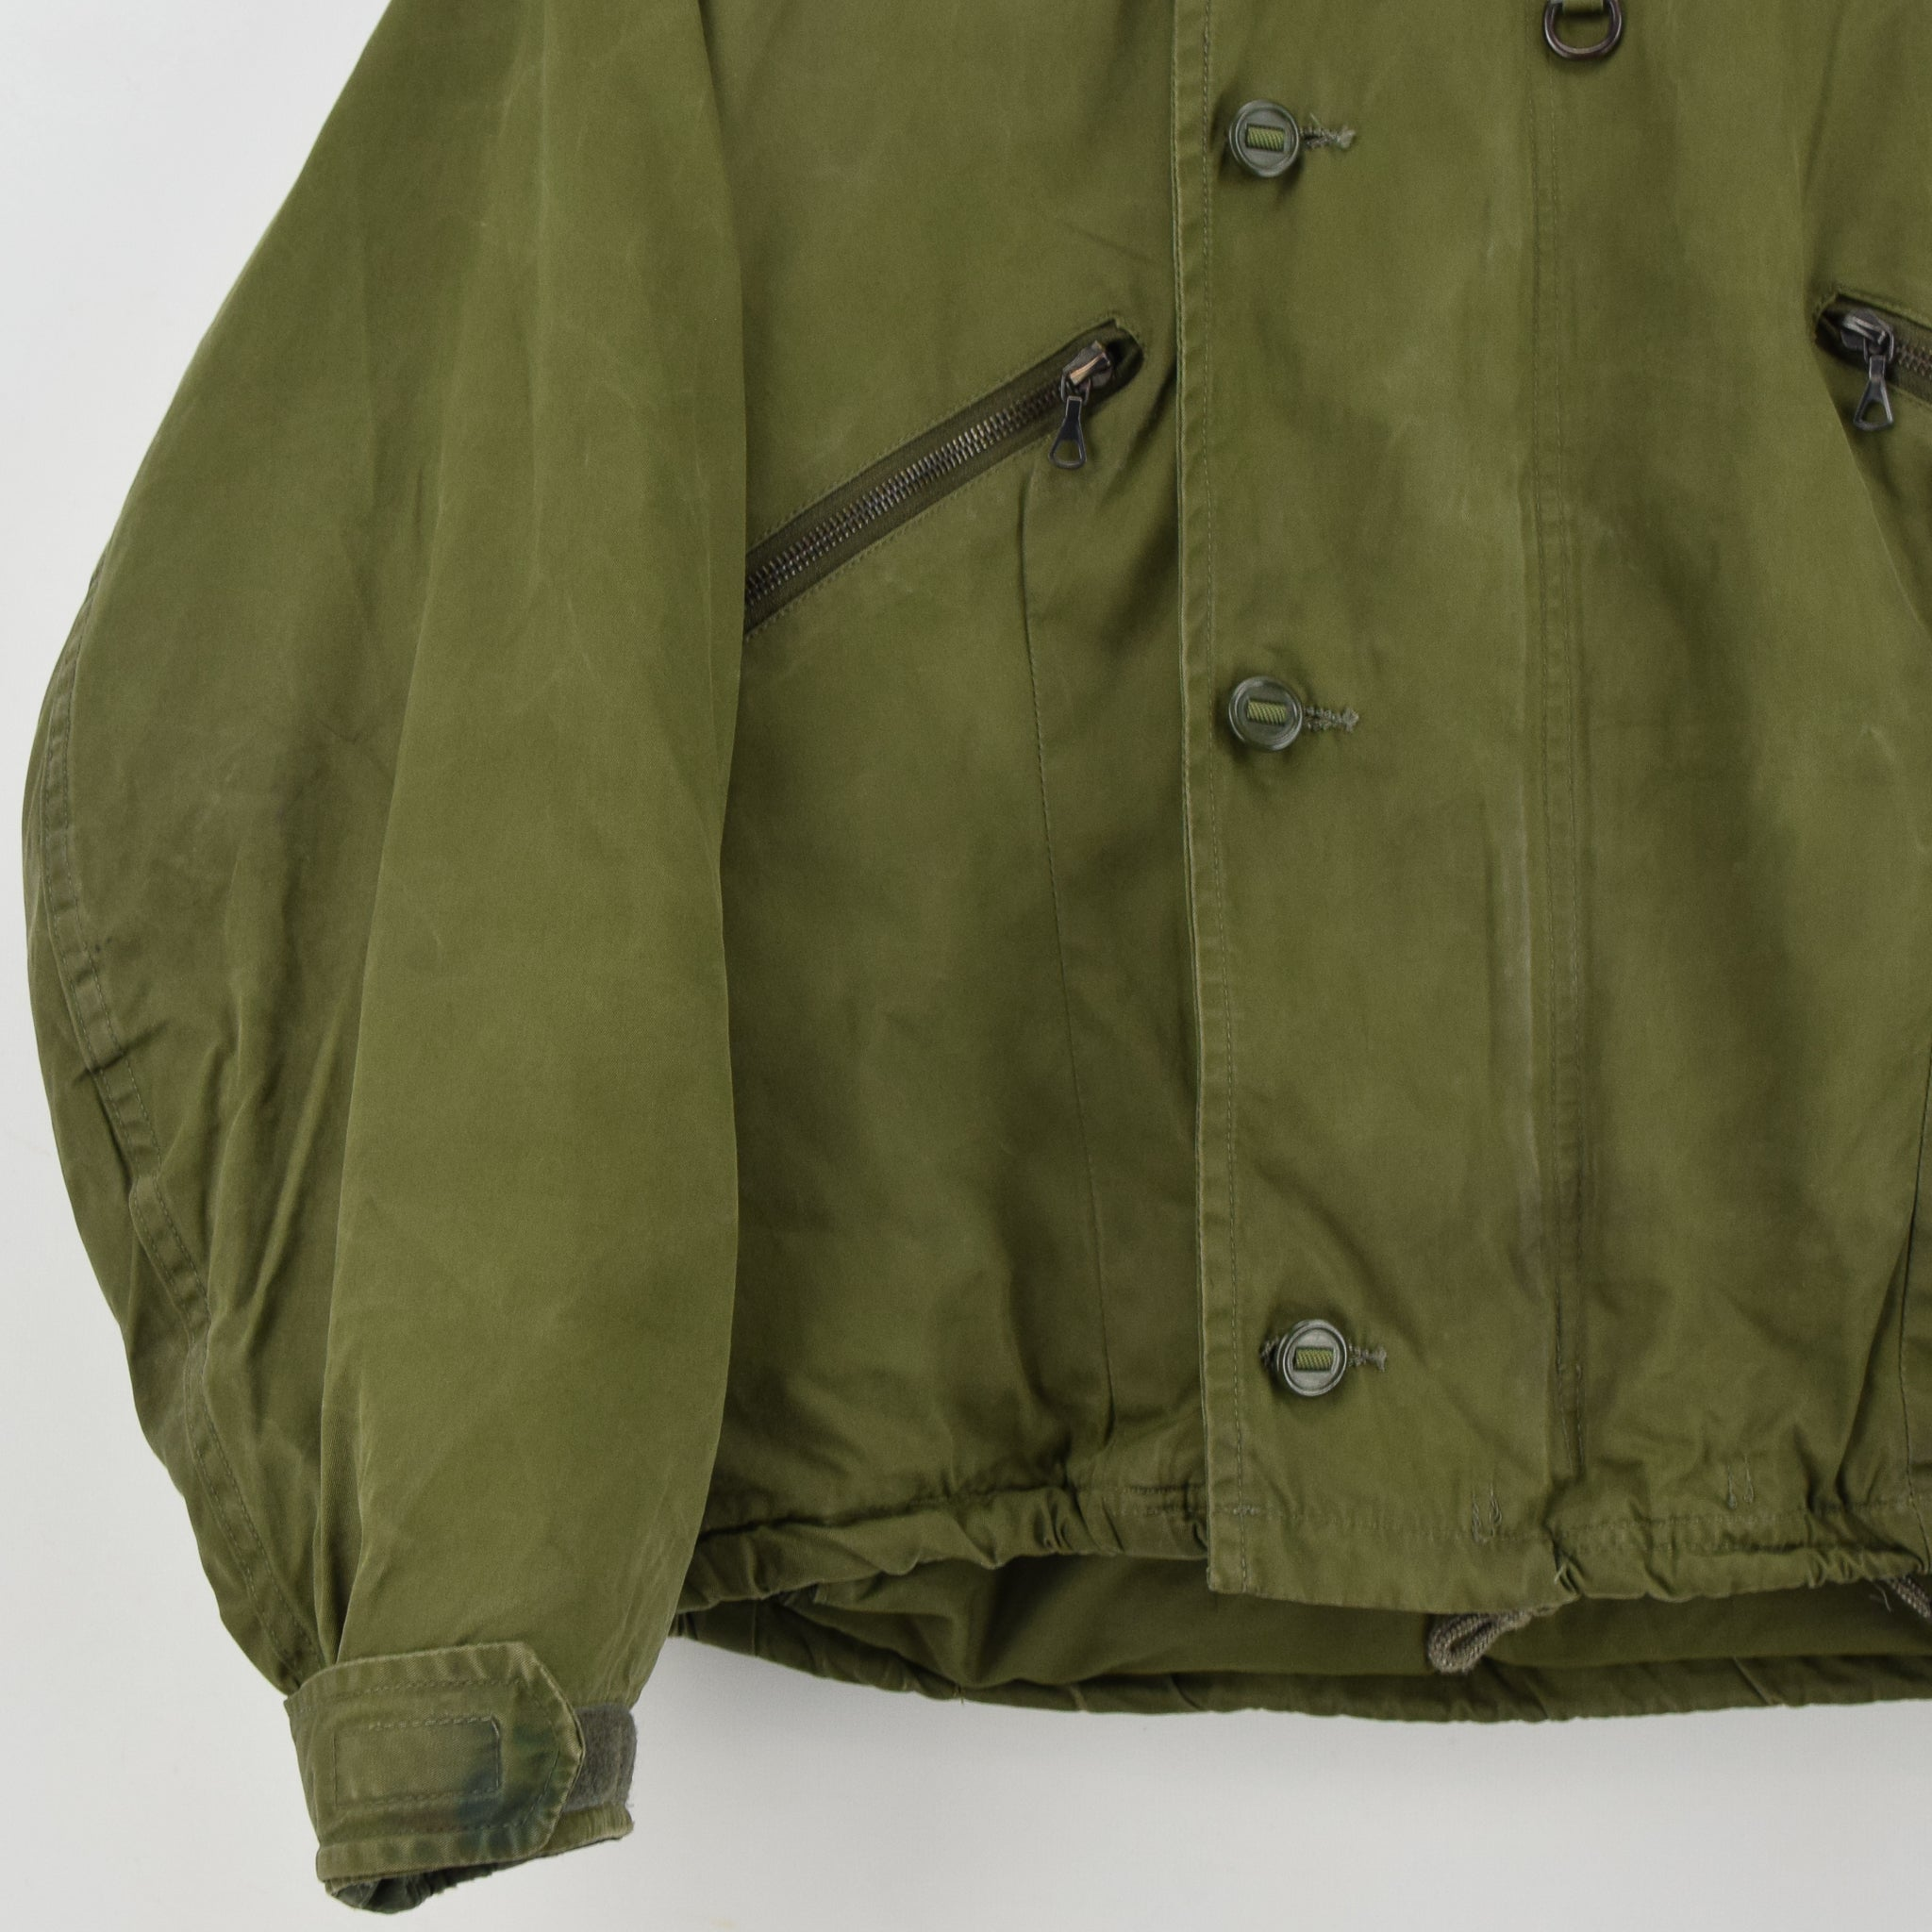 Vintage 90s Military British RAF Cold Weather Mk 3 Flight Cotton Bomber Jacket S front hem